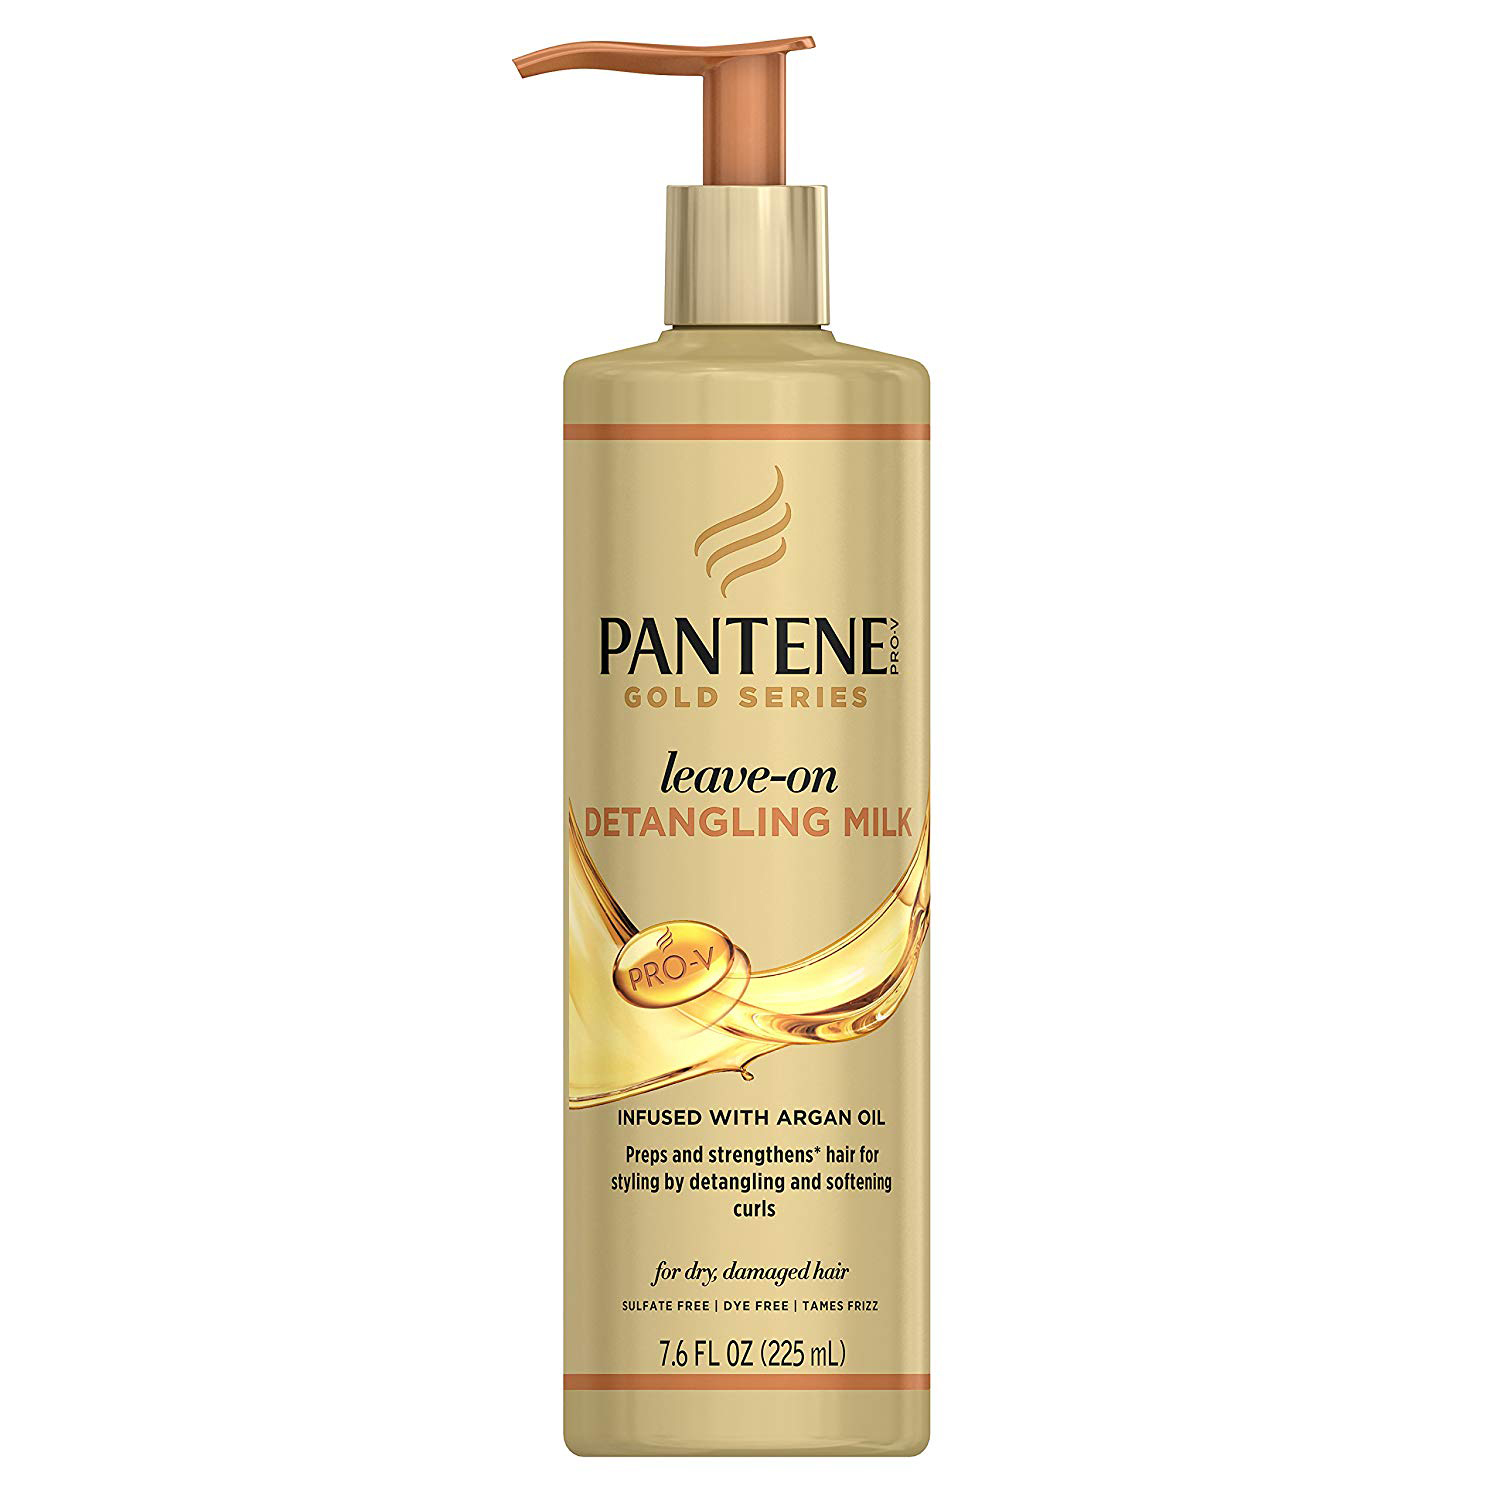 Pantene Leave-On Detangling Milk